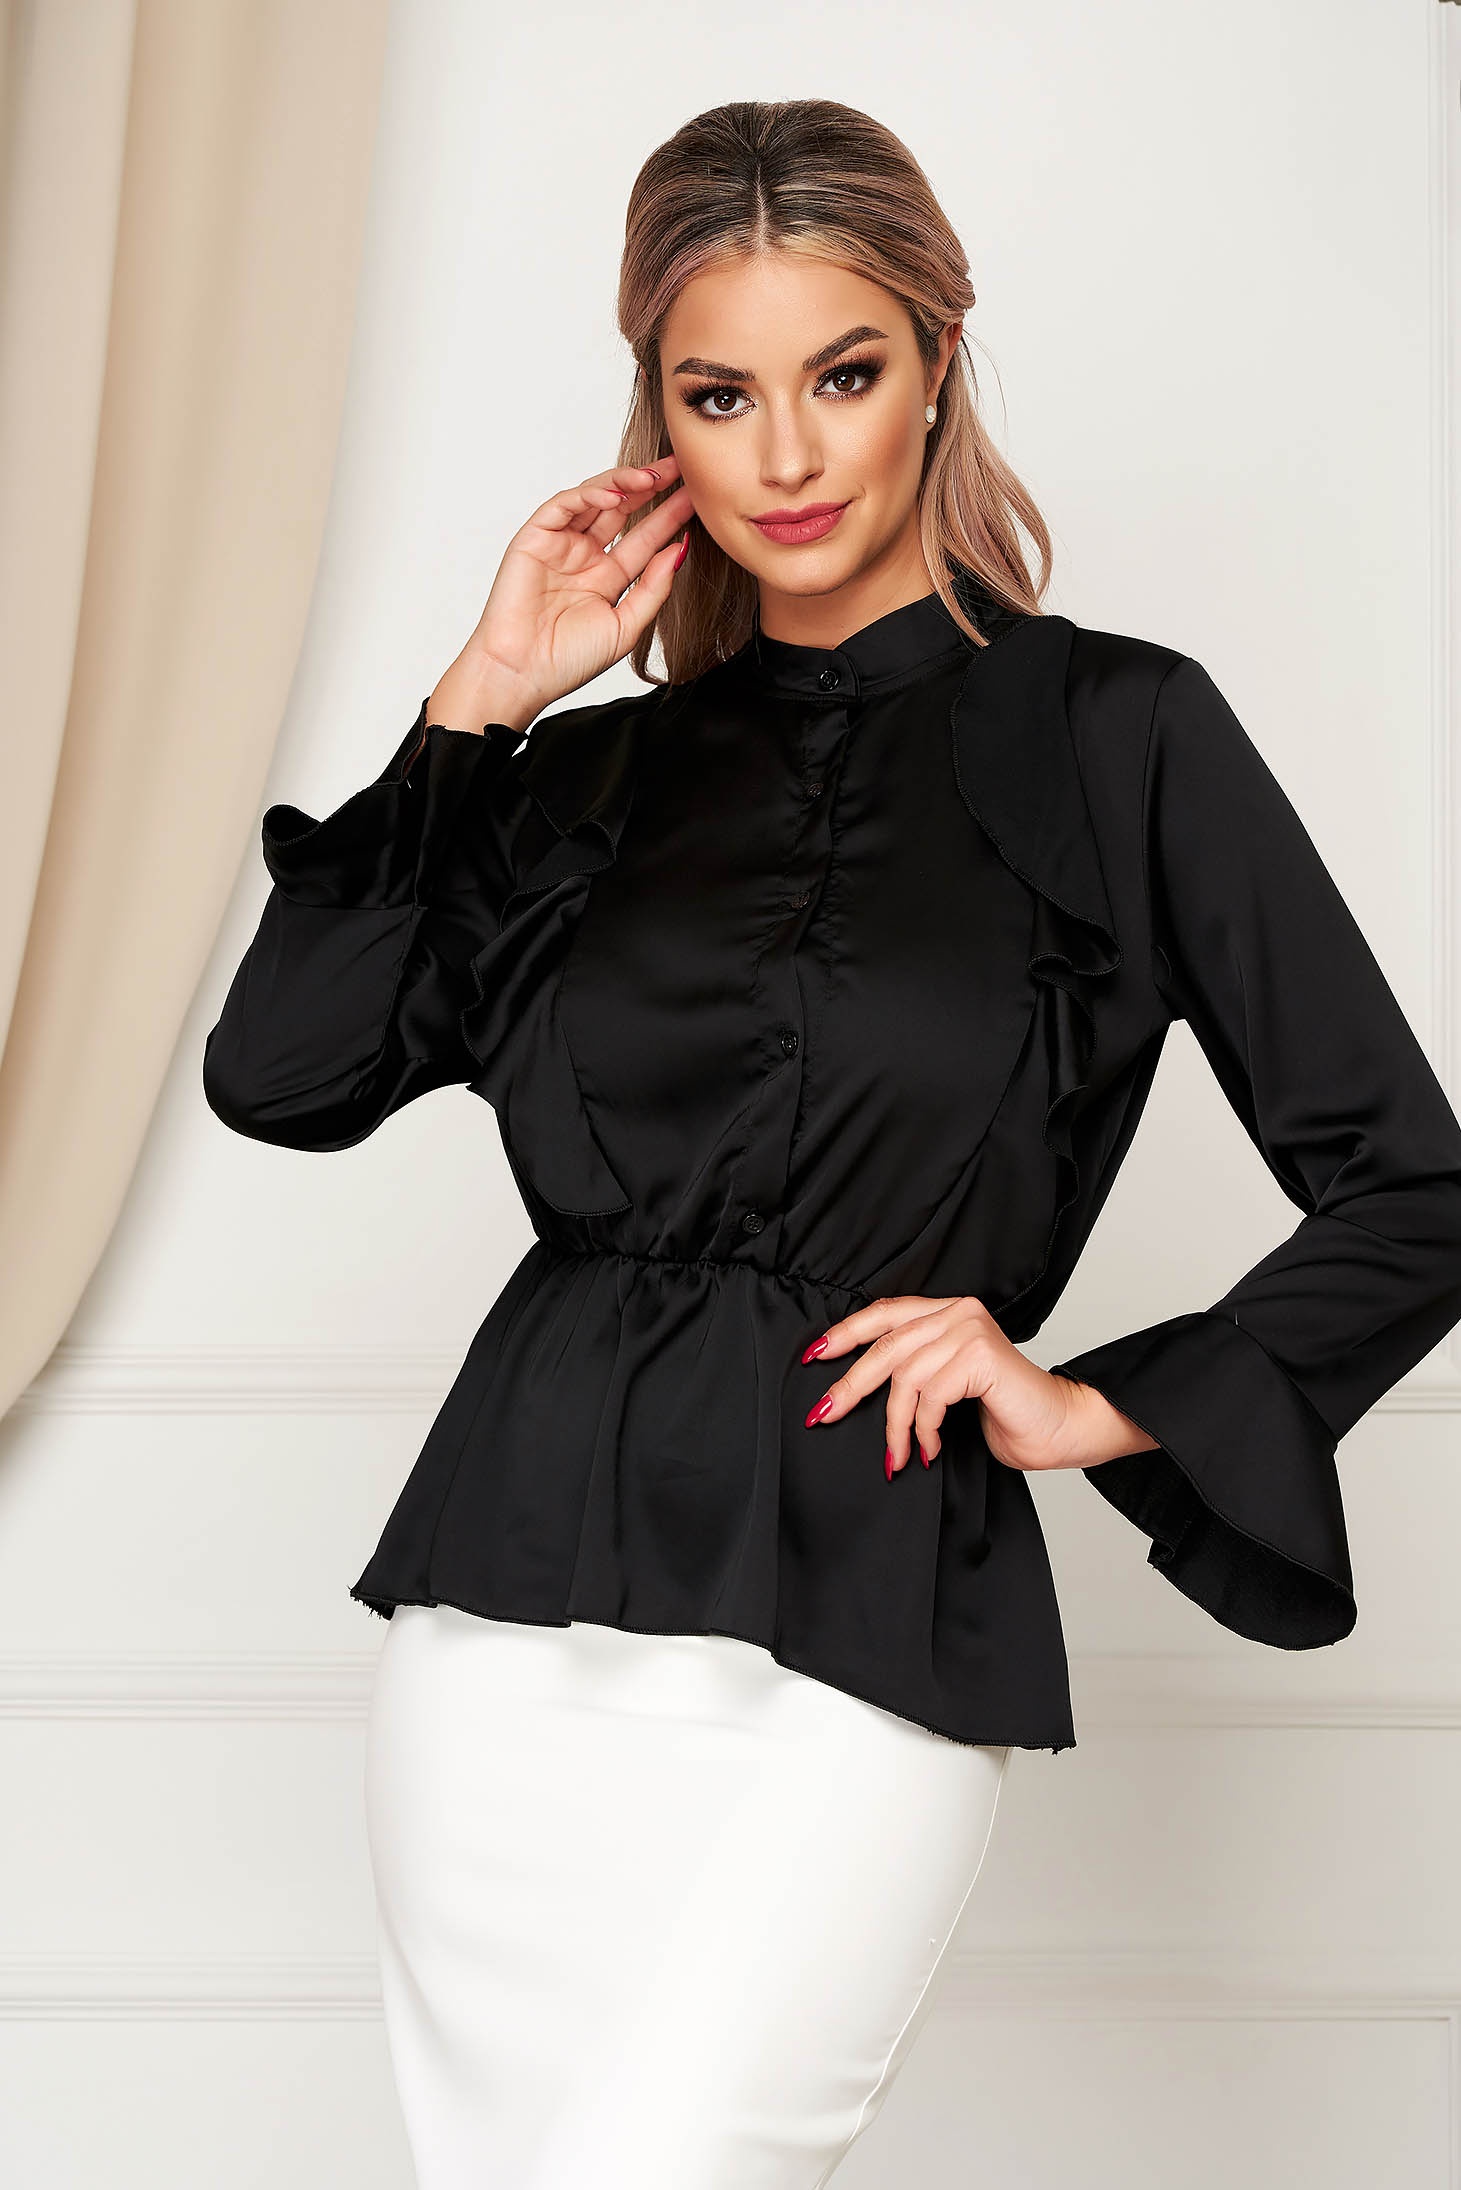 Black women`s shirt elegant flared from satin fabric texture with elastic waist with ruffle details